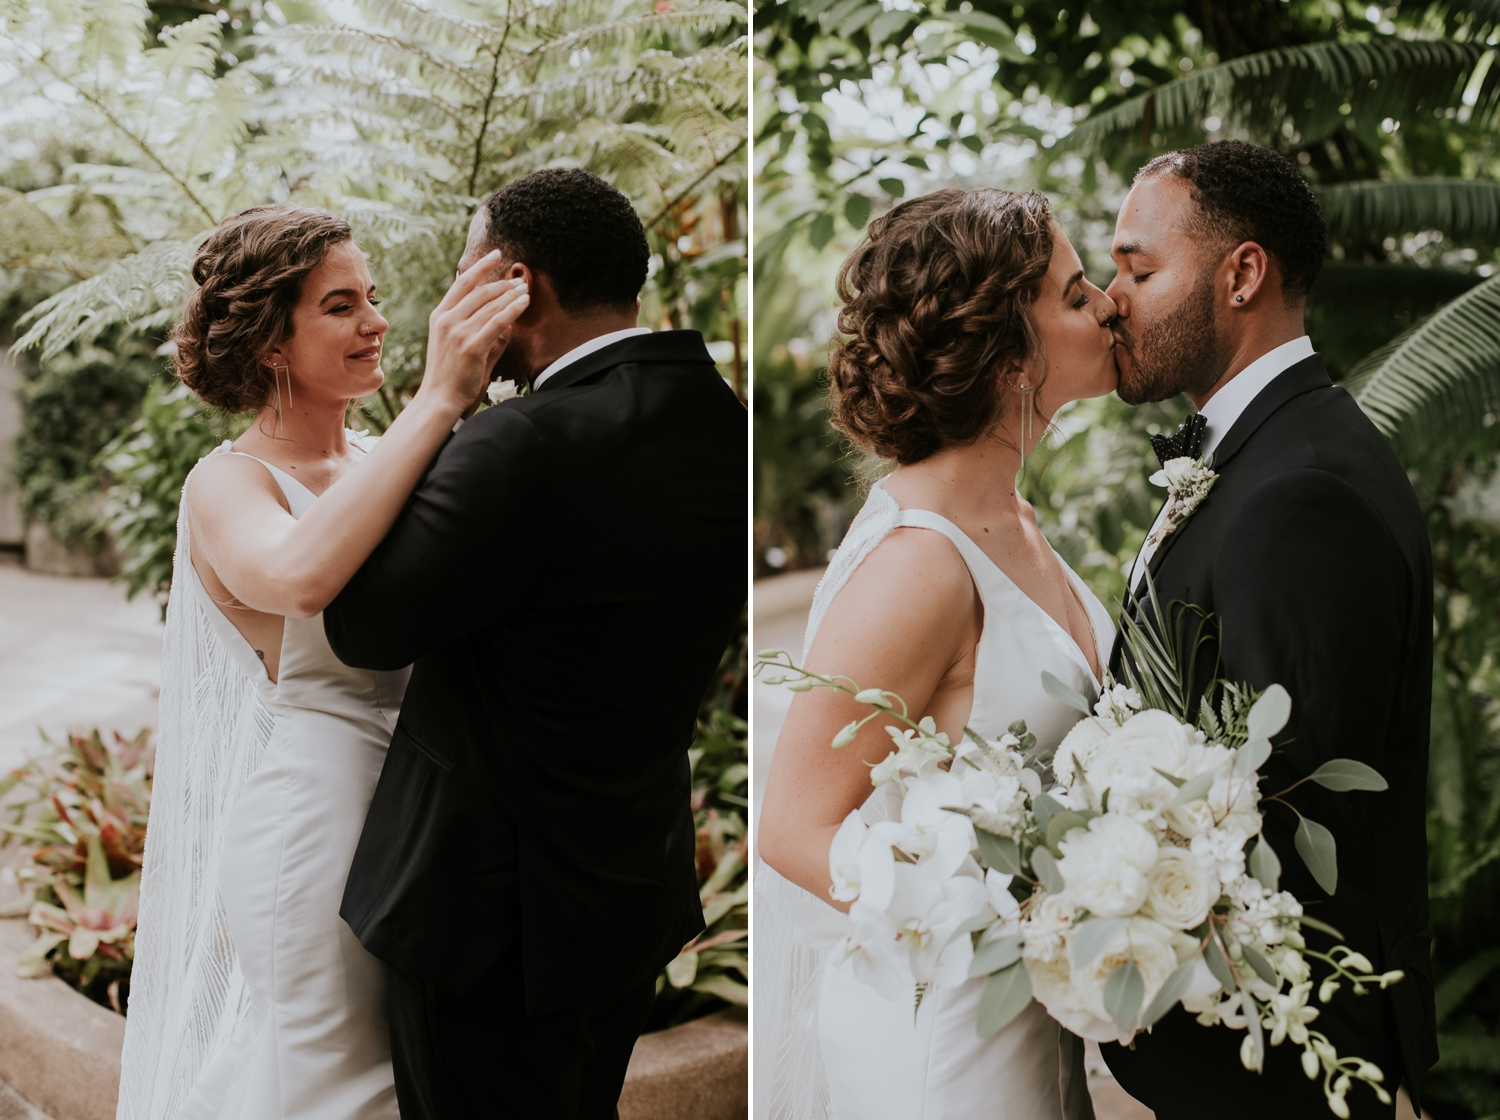 baltimore-maryland-rawlings-conservatory-wedding-portaits-photography 33.jpg